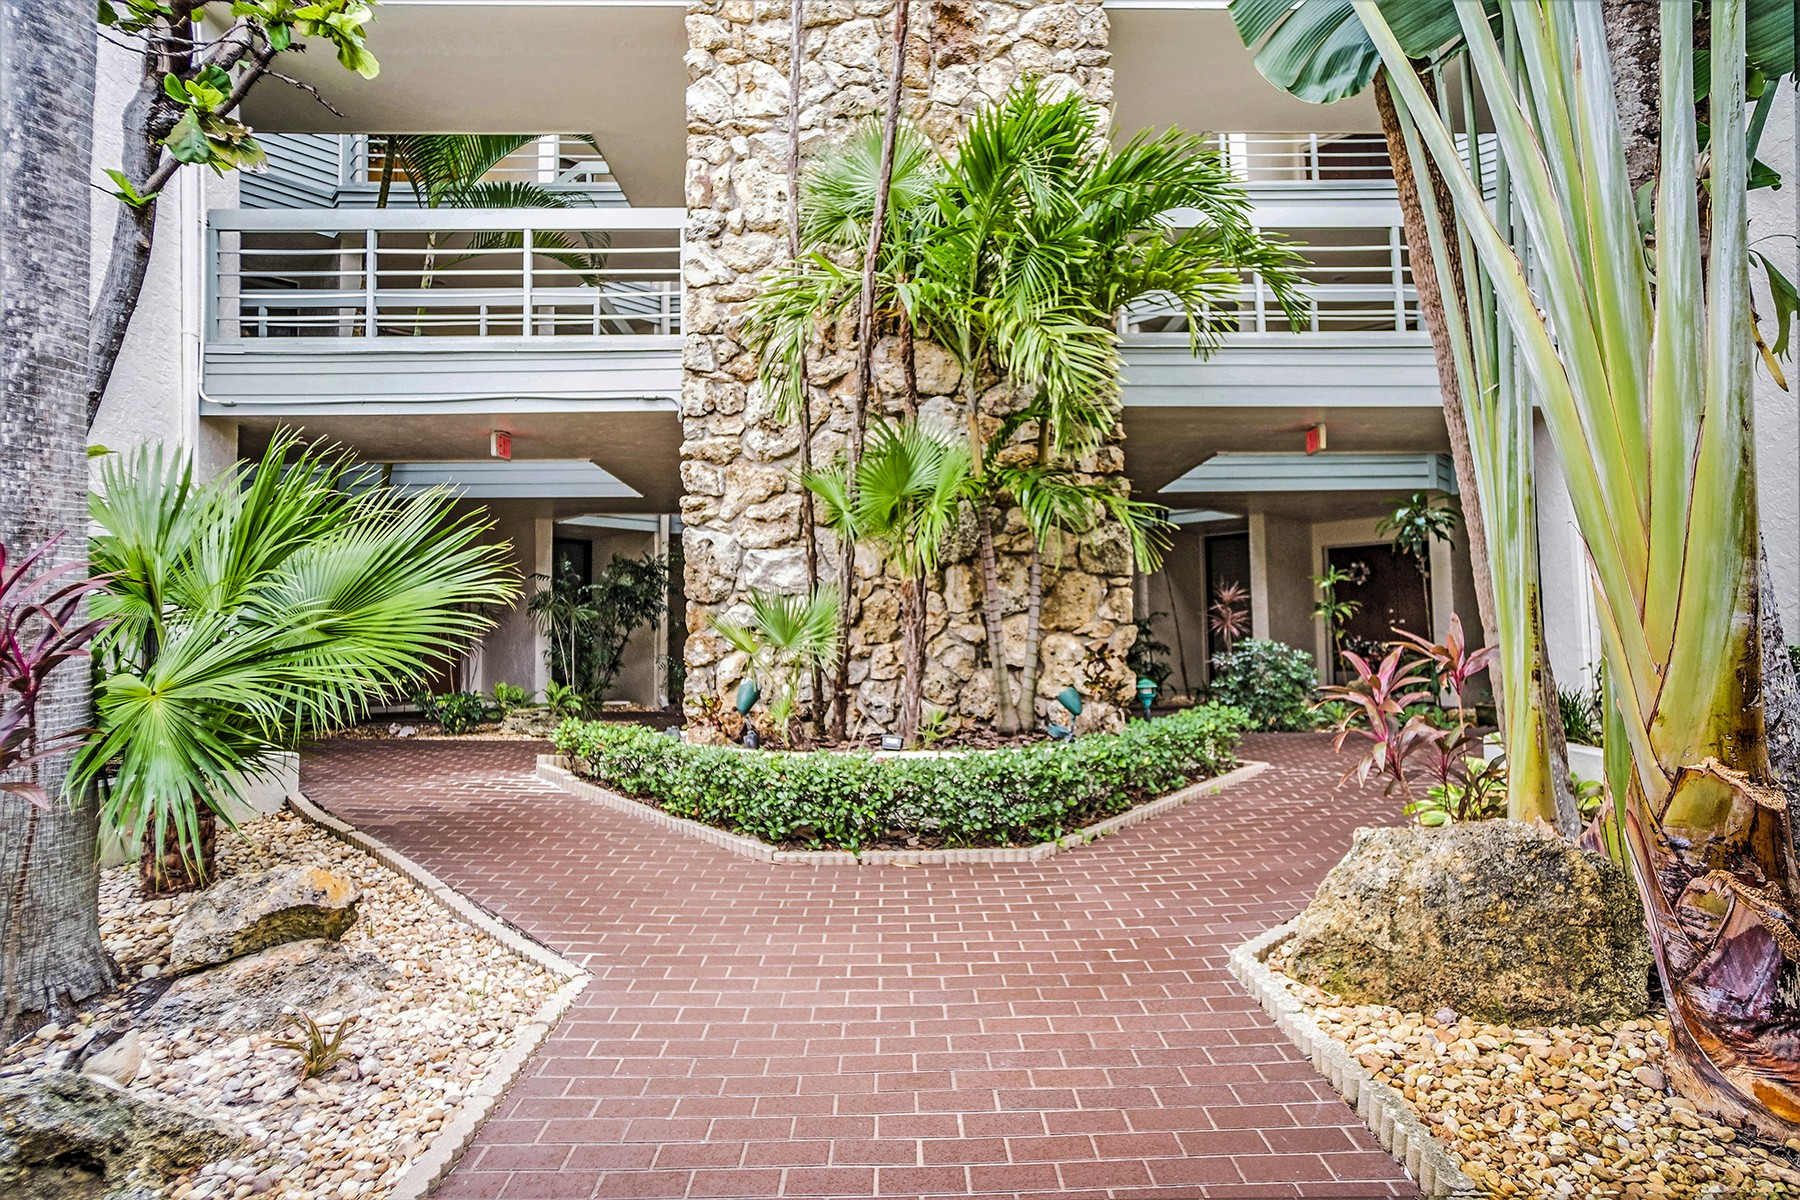 Beautifully Renovated 3/2 Condo in Indialantic By the Sea. 700 Wavecrest Avenue Unit 106 Indialantic, Florida 32903 Förenta staterna